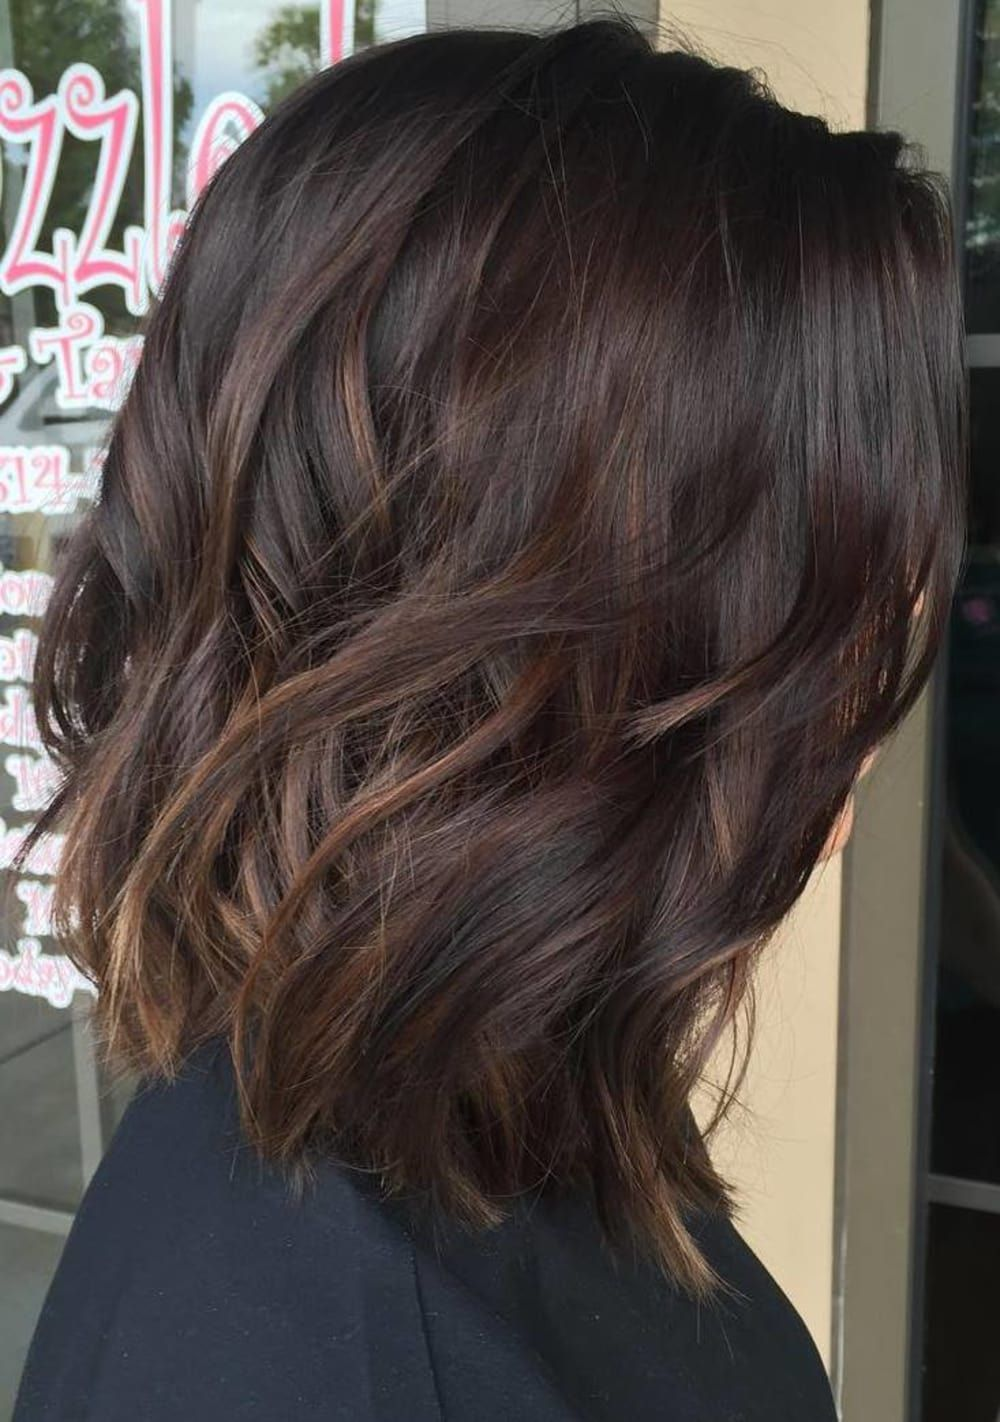 70 Flattering Balayage Hair Color Ideas For 2019 In 2019 Oc Boards Hair Color Balayage Balayage Hair Hair Styles